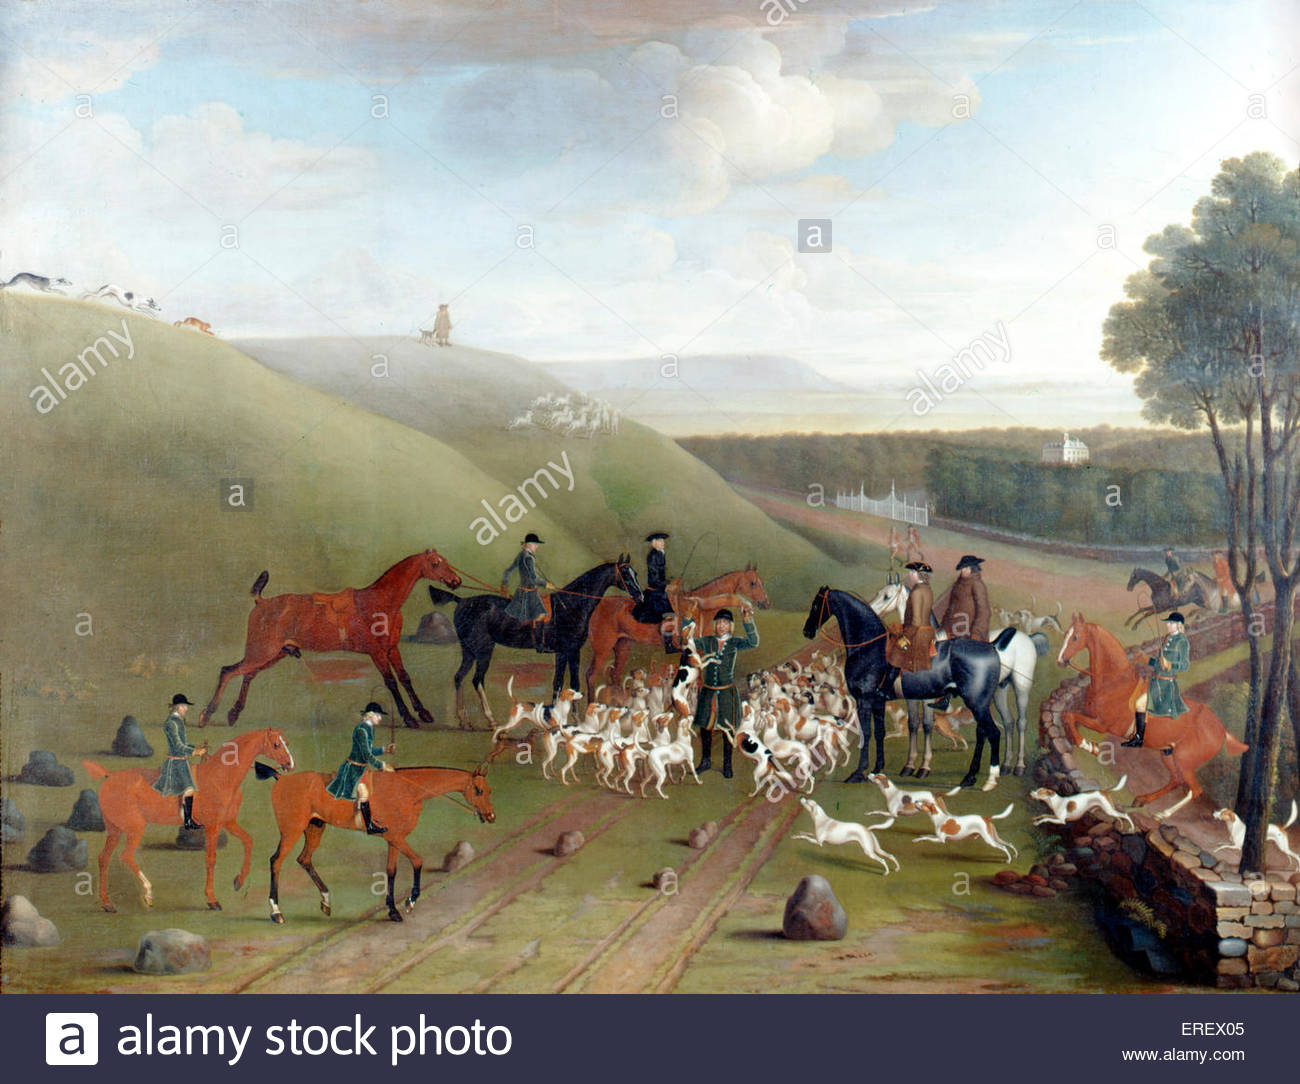 A Kill in Ashdown Park by James Seymour, 1743. Oil on canvas,  1803 x 2388 mm (support). JS: English painter,  1702–1752. - Stock Image